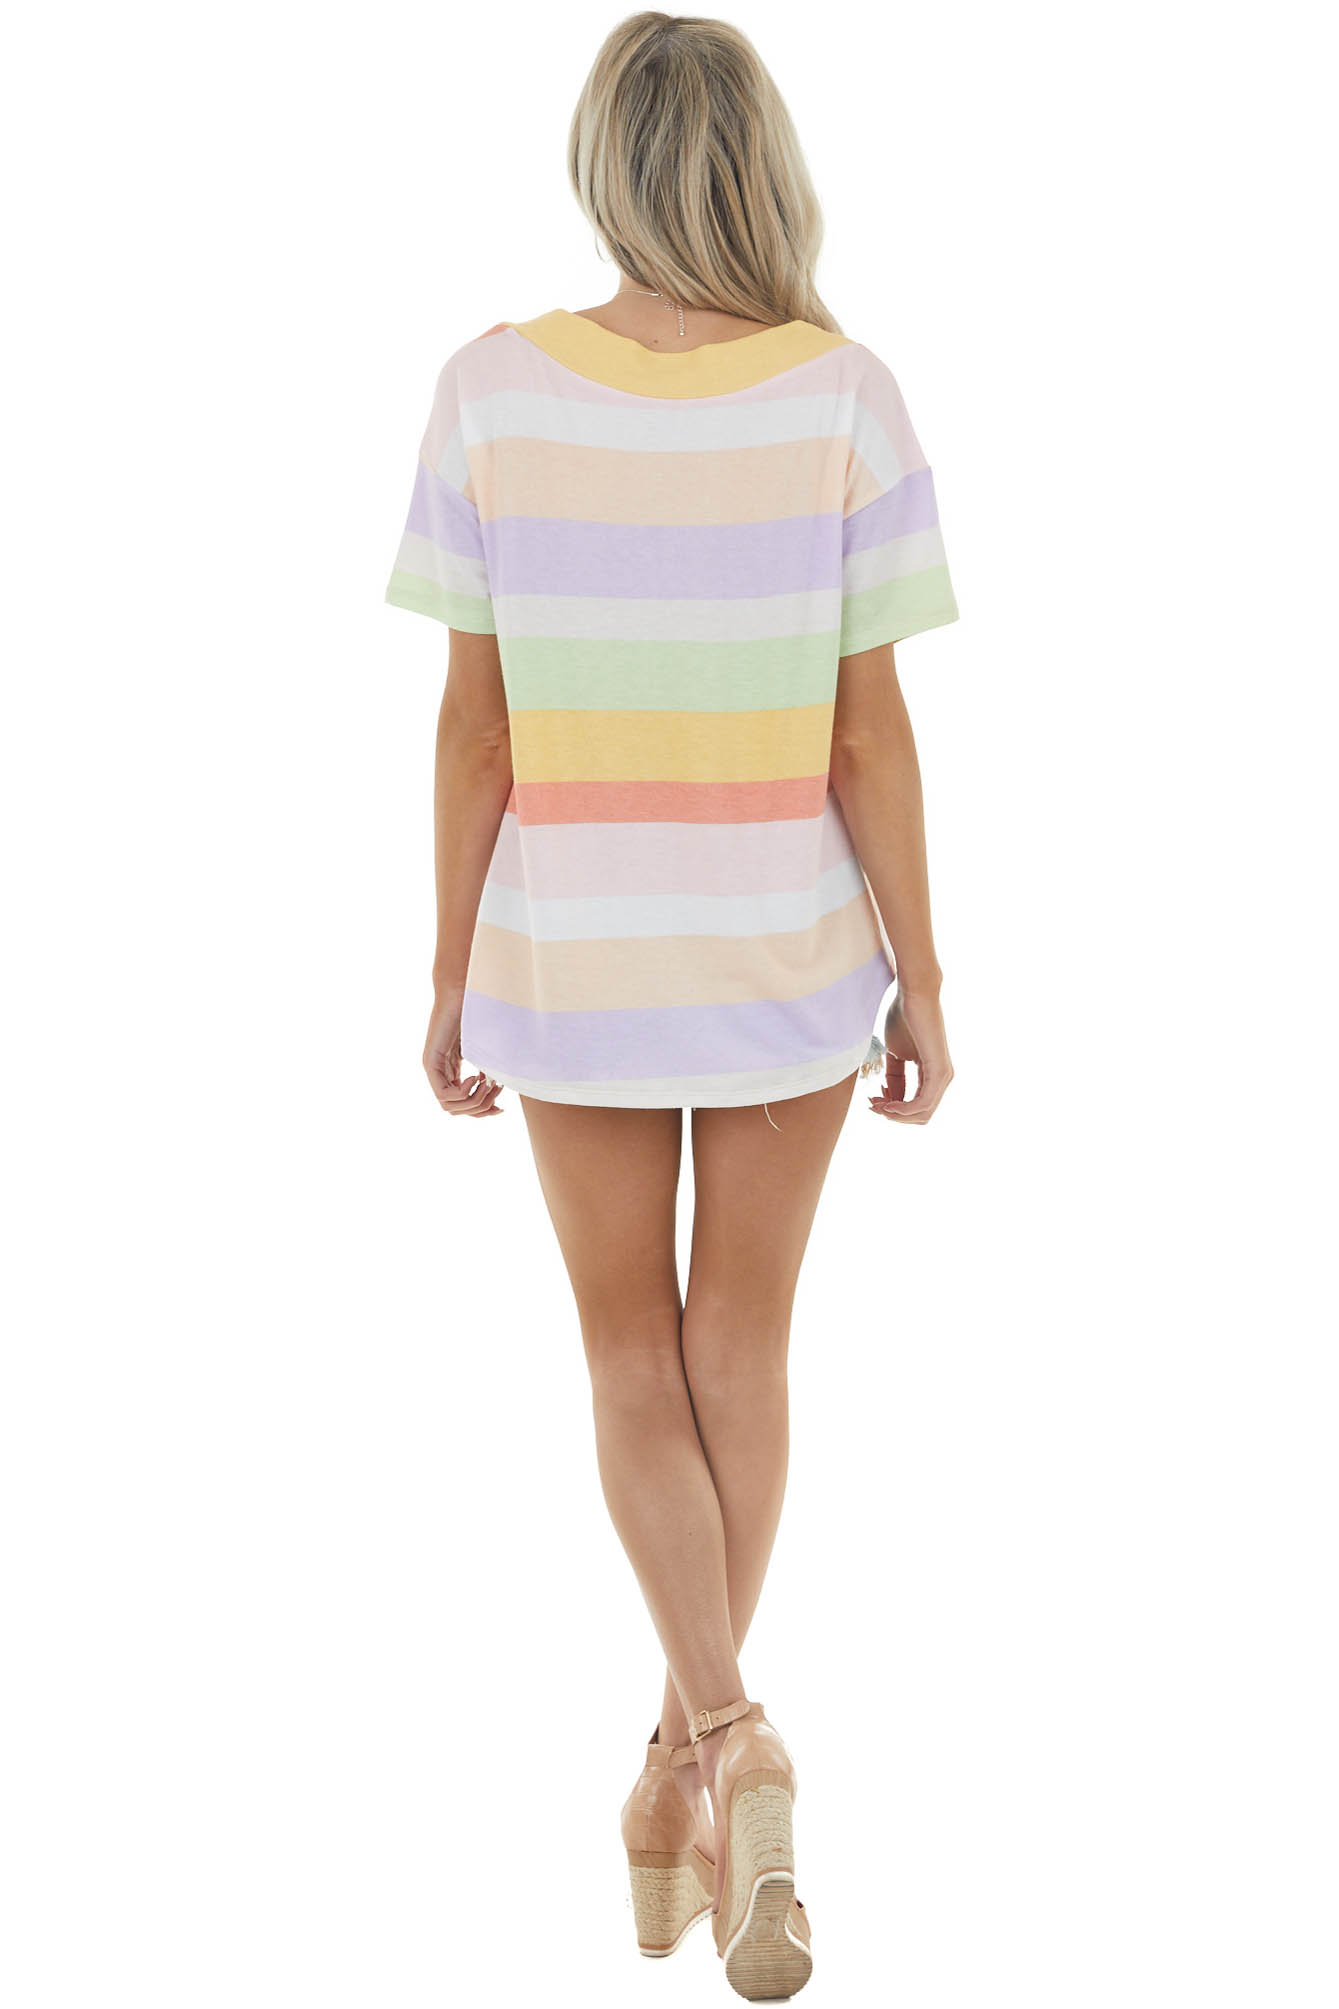 Pastel Colorful Striped Short Sleeve Knit Top with V Neckline